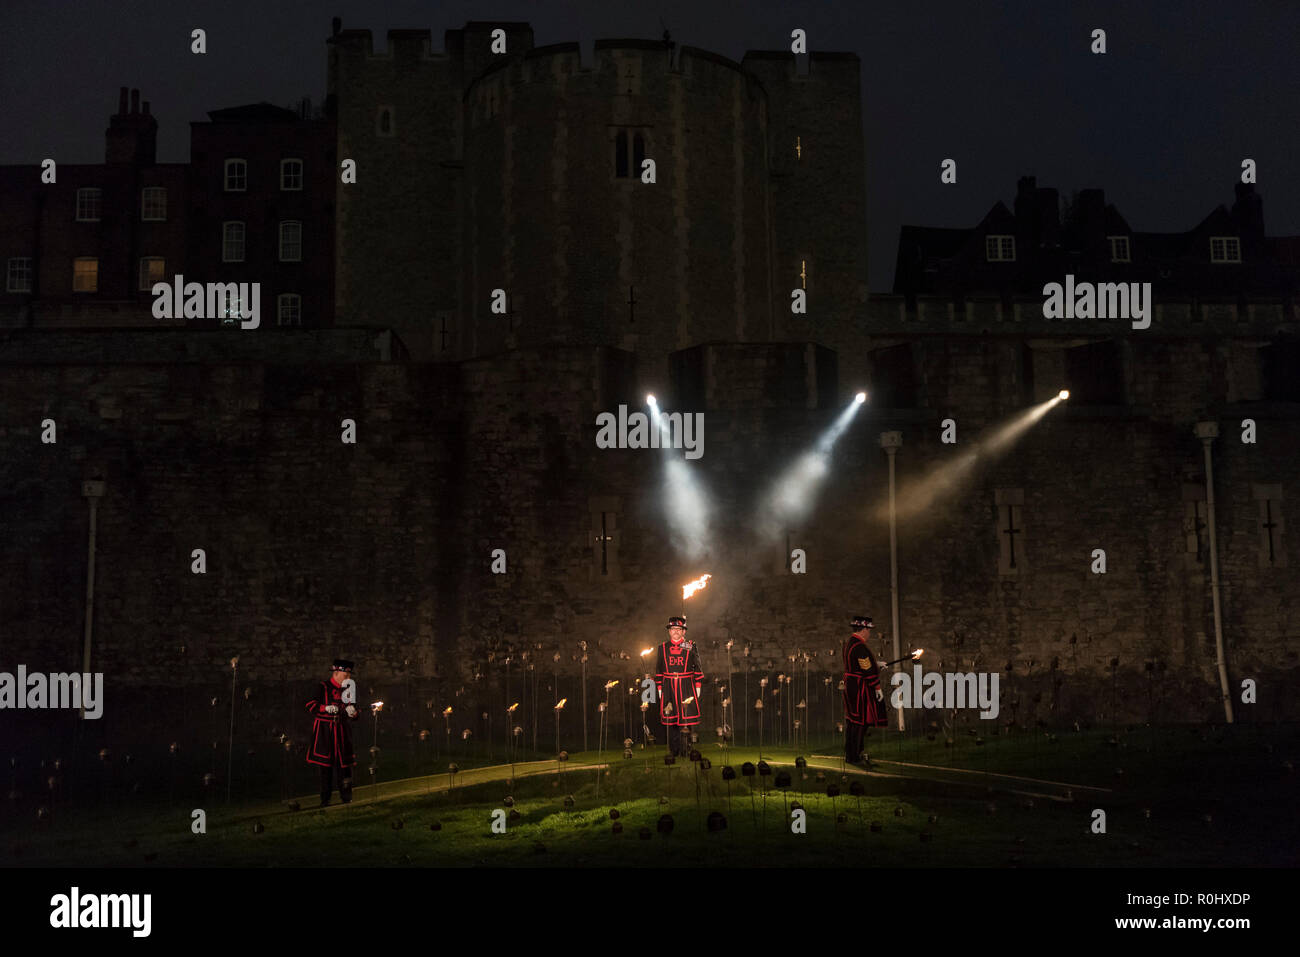 London, UK.  5 November 2018. Yeoman Warders, former servicemen and women, ceremonially light the first flame followed by volunteers proceeding to light the rest of the installation, gradually creating a circle of light.   A new installation by designer Tom Piper called 'Beyond the Deepening Shadow: The Tower Remembers', is open for the public to view at the Tower of London until Armistice Day 2018.  The moat is filled with thousands of individual flames commemorating the centenary of the end of the First World War. Credit: Stephen Chung/Alamy Live News - Stock Image